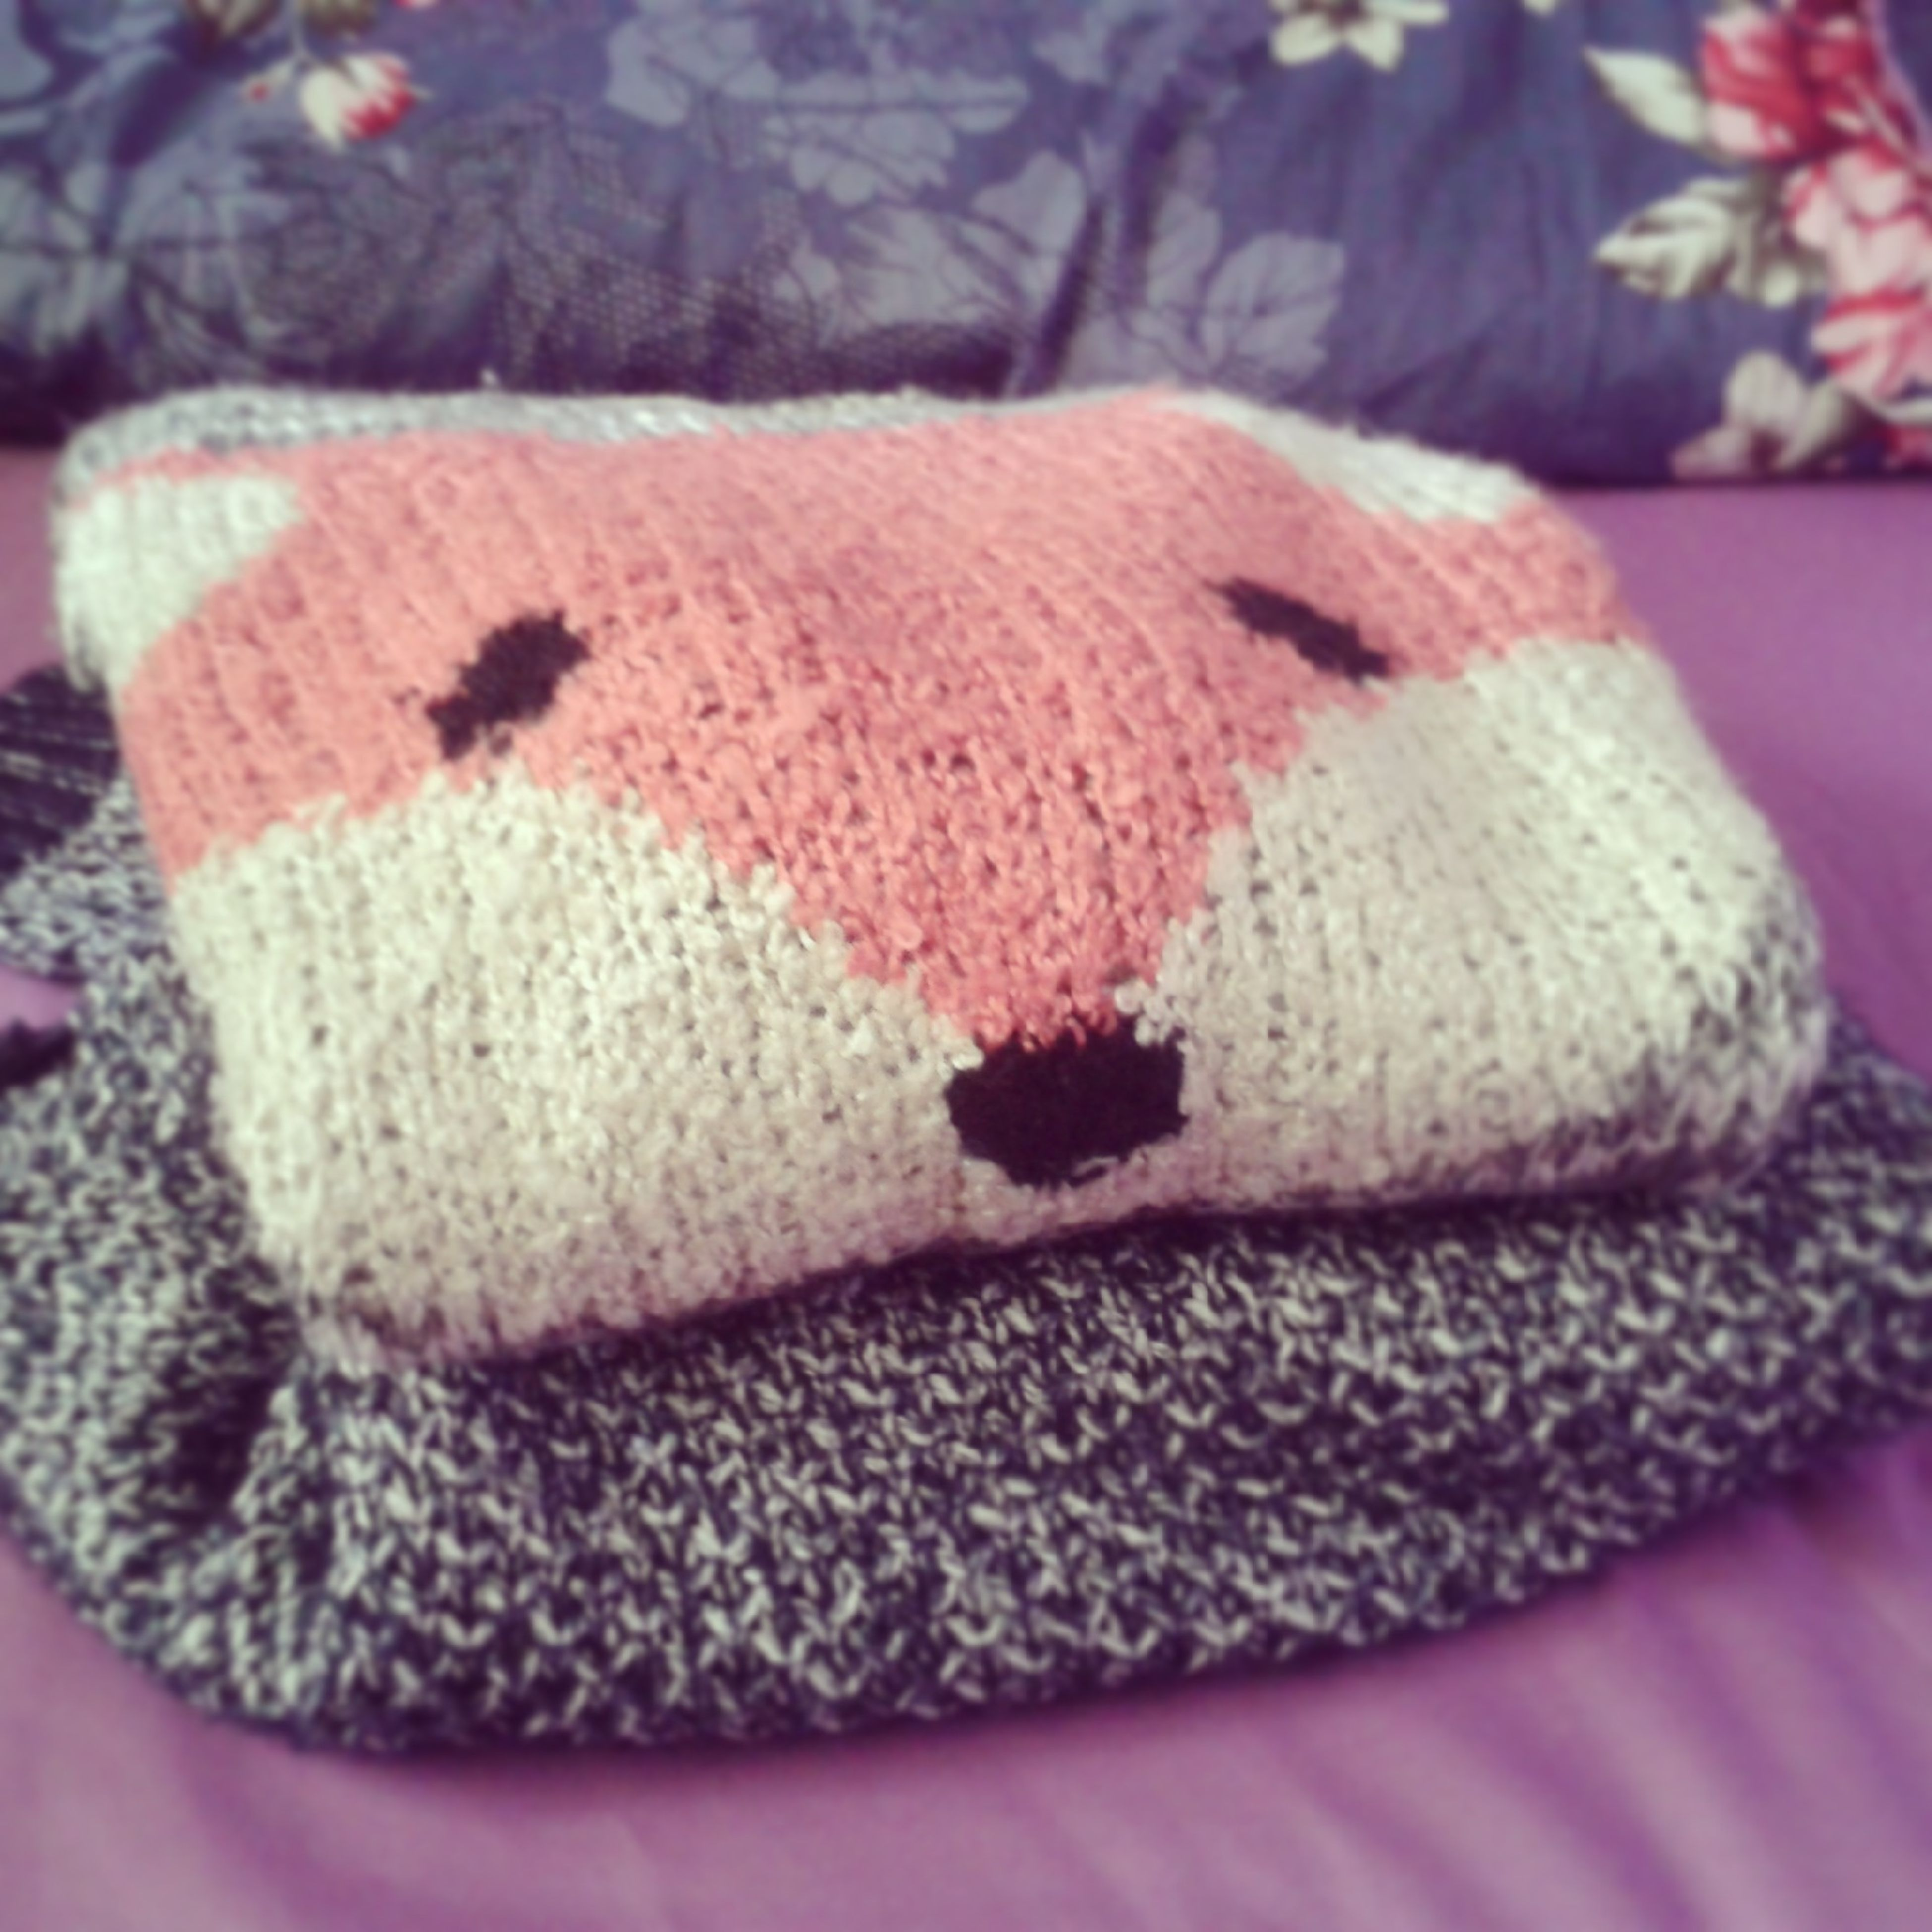 close-up, indoors, focus on foreground, fabric, pink color, stuffed toy, wool, still life, textile, toy, selective focus, no people, animal representation, softness, relaxation, bed, pattern, blanket, day, art and craft